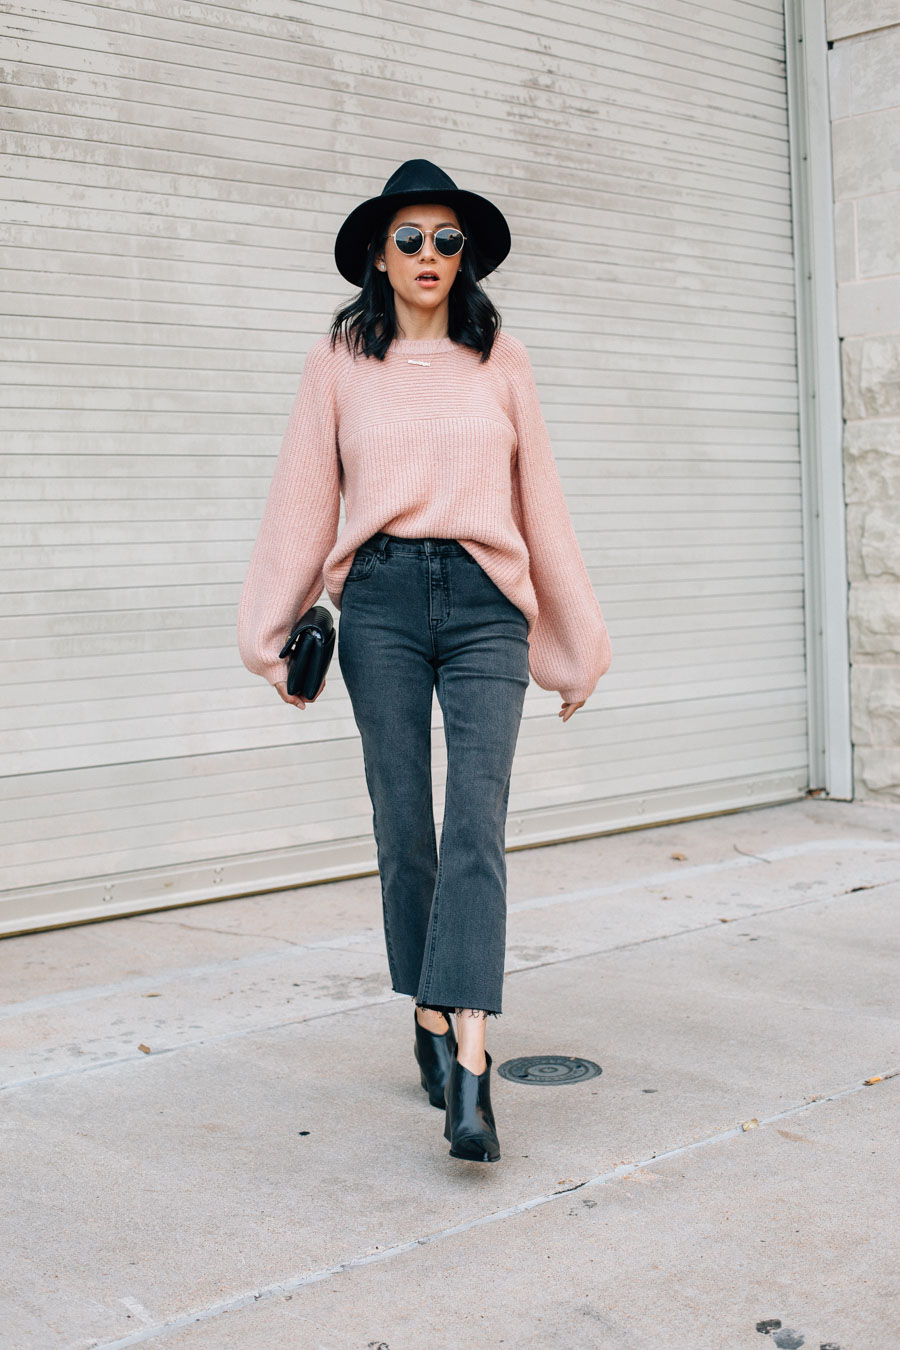 Style blogger Lilly Beltran in a chic fall outfit with black jeans, pink sweater, fedora hat and black leather booties.